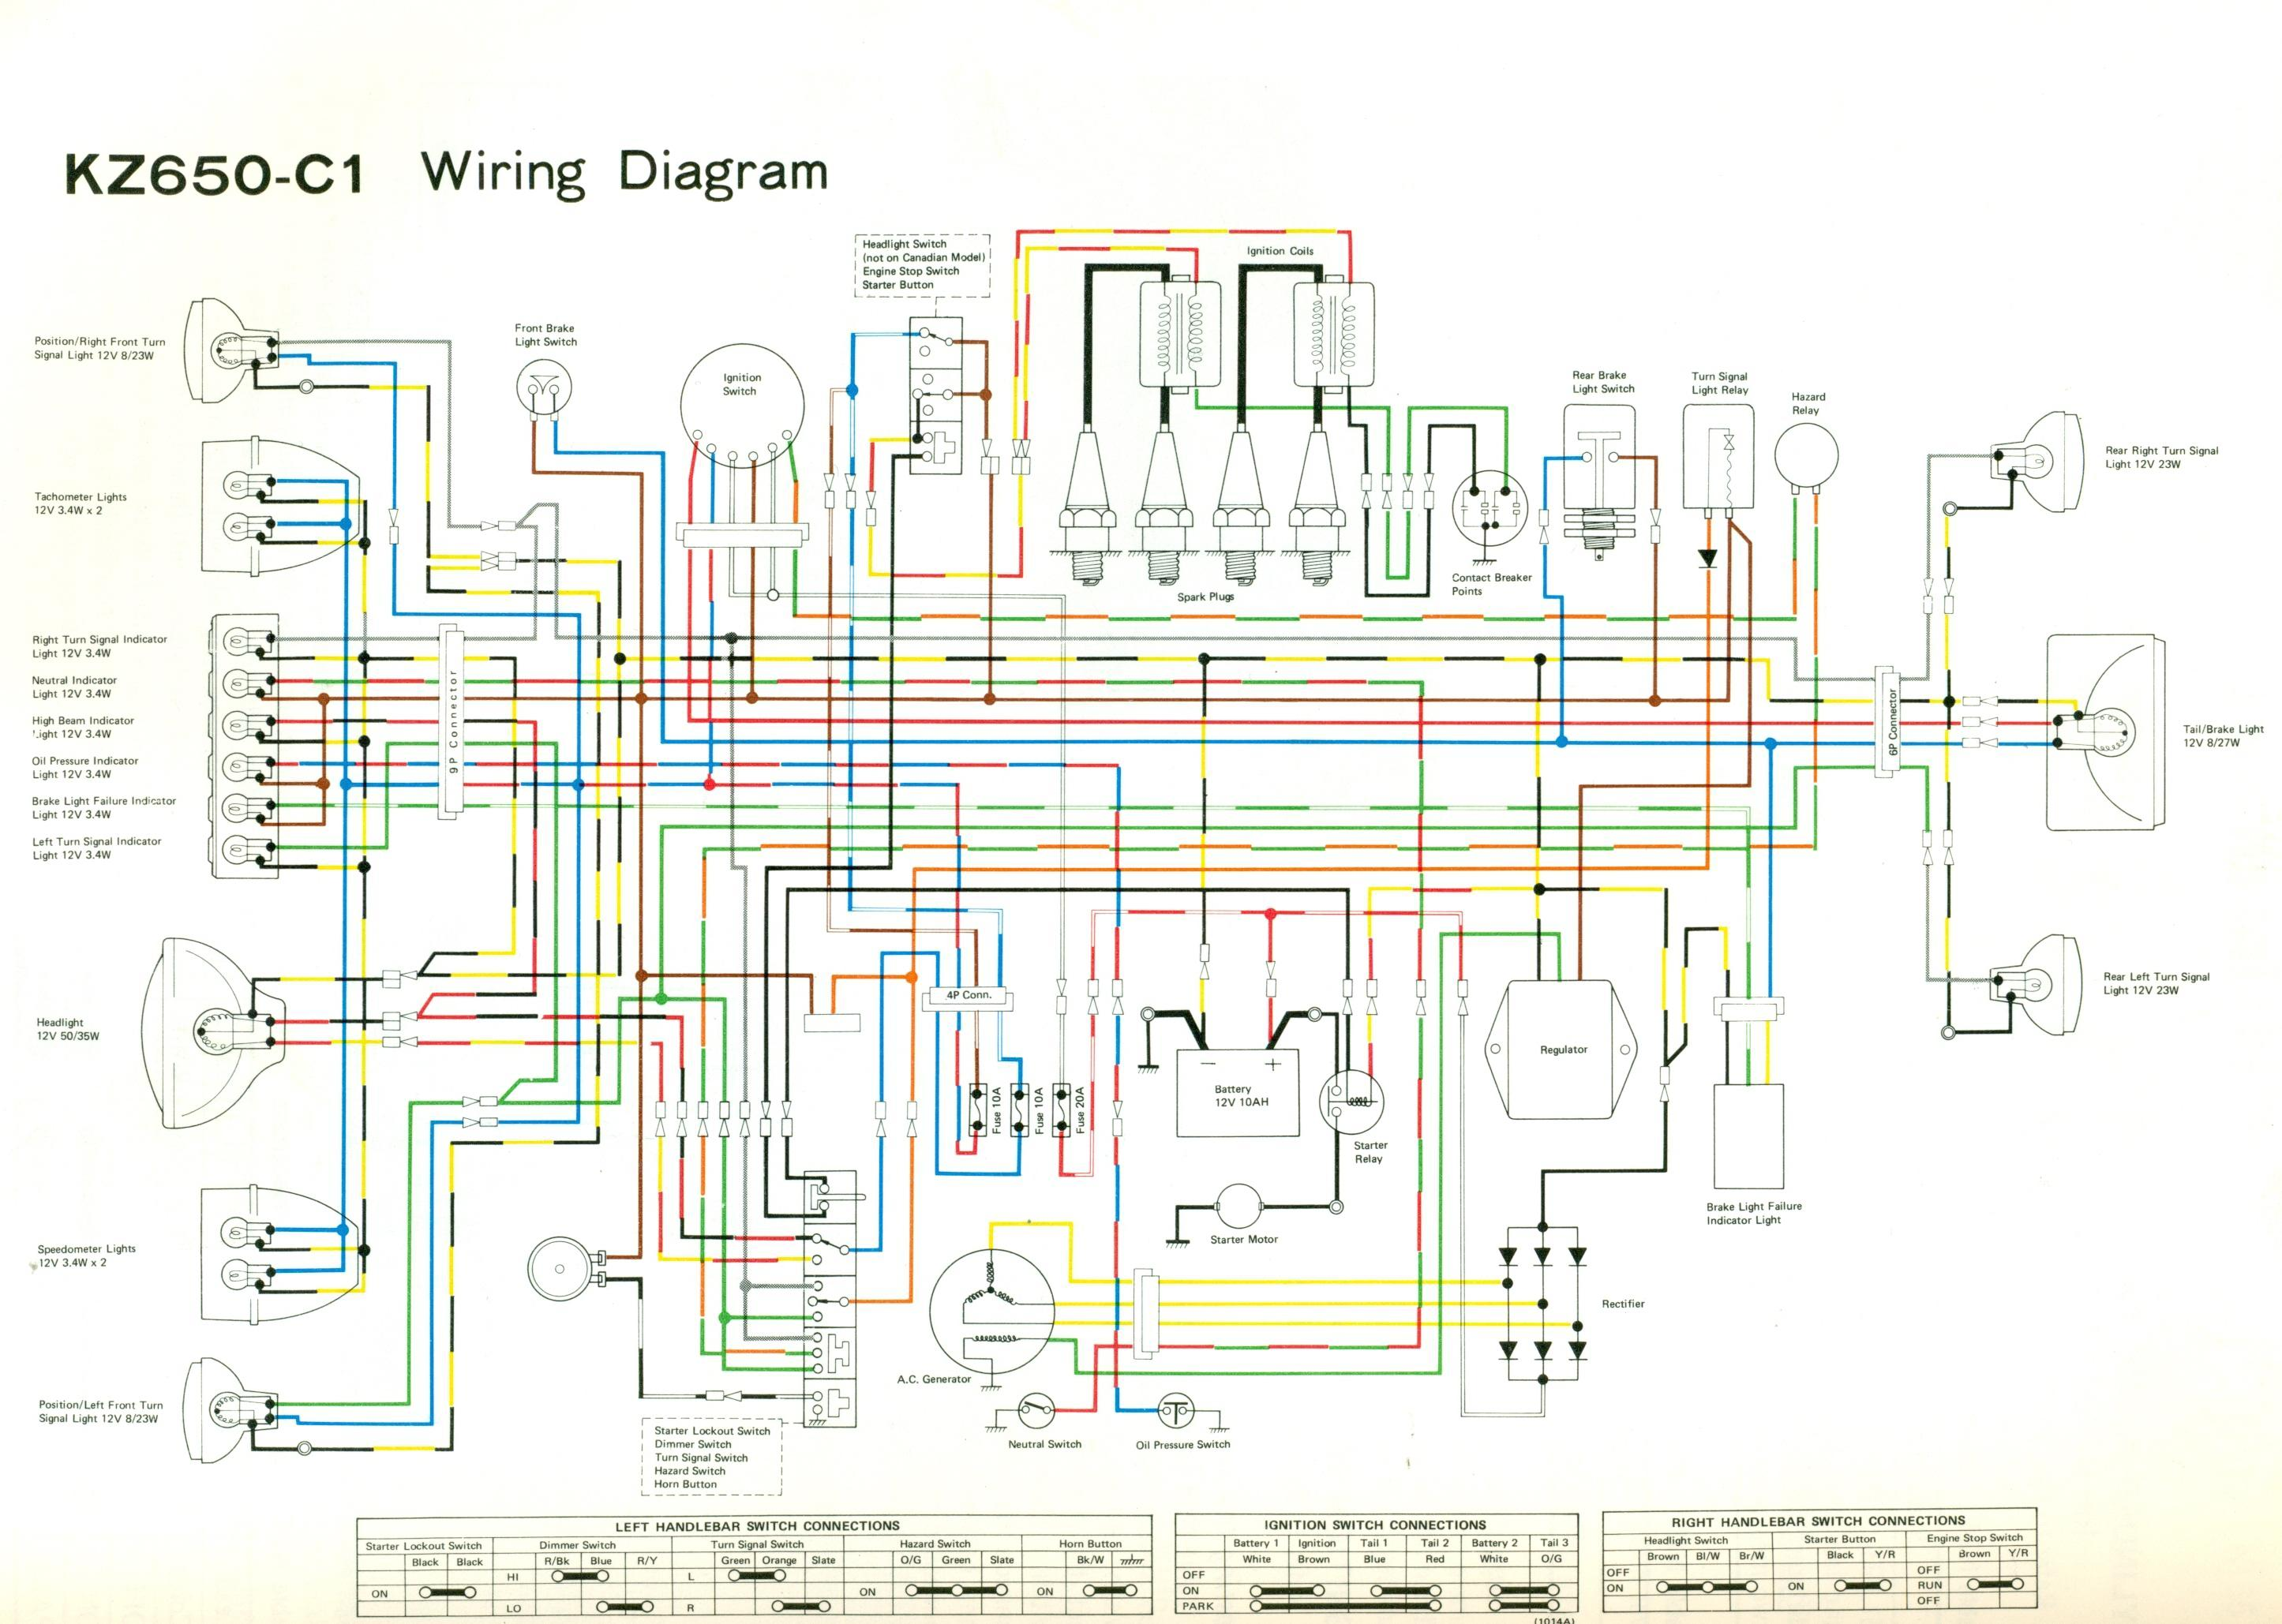 KZ650 C wiring diagrams kawasaki z750 wiring diagram at creativeand.co